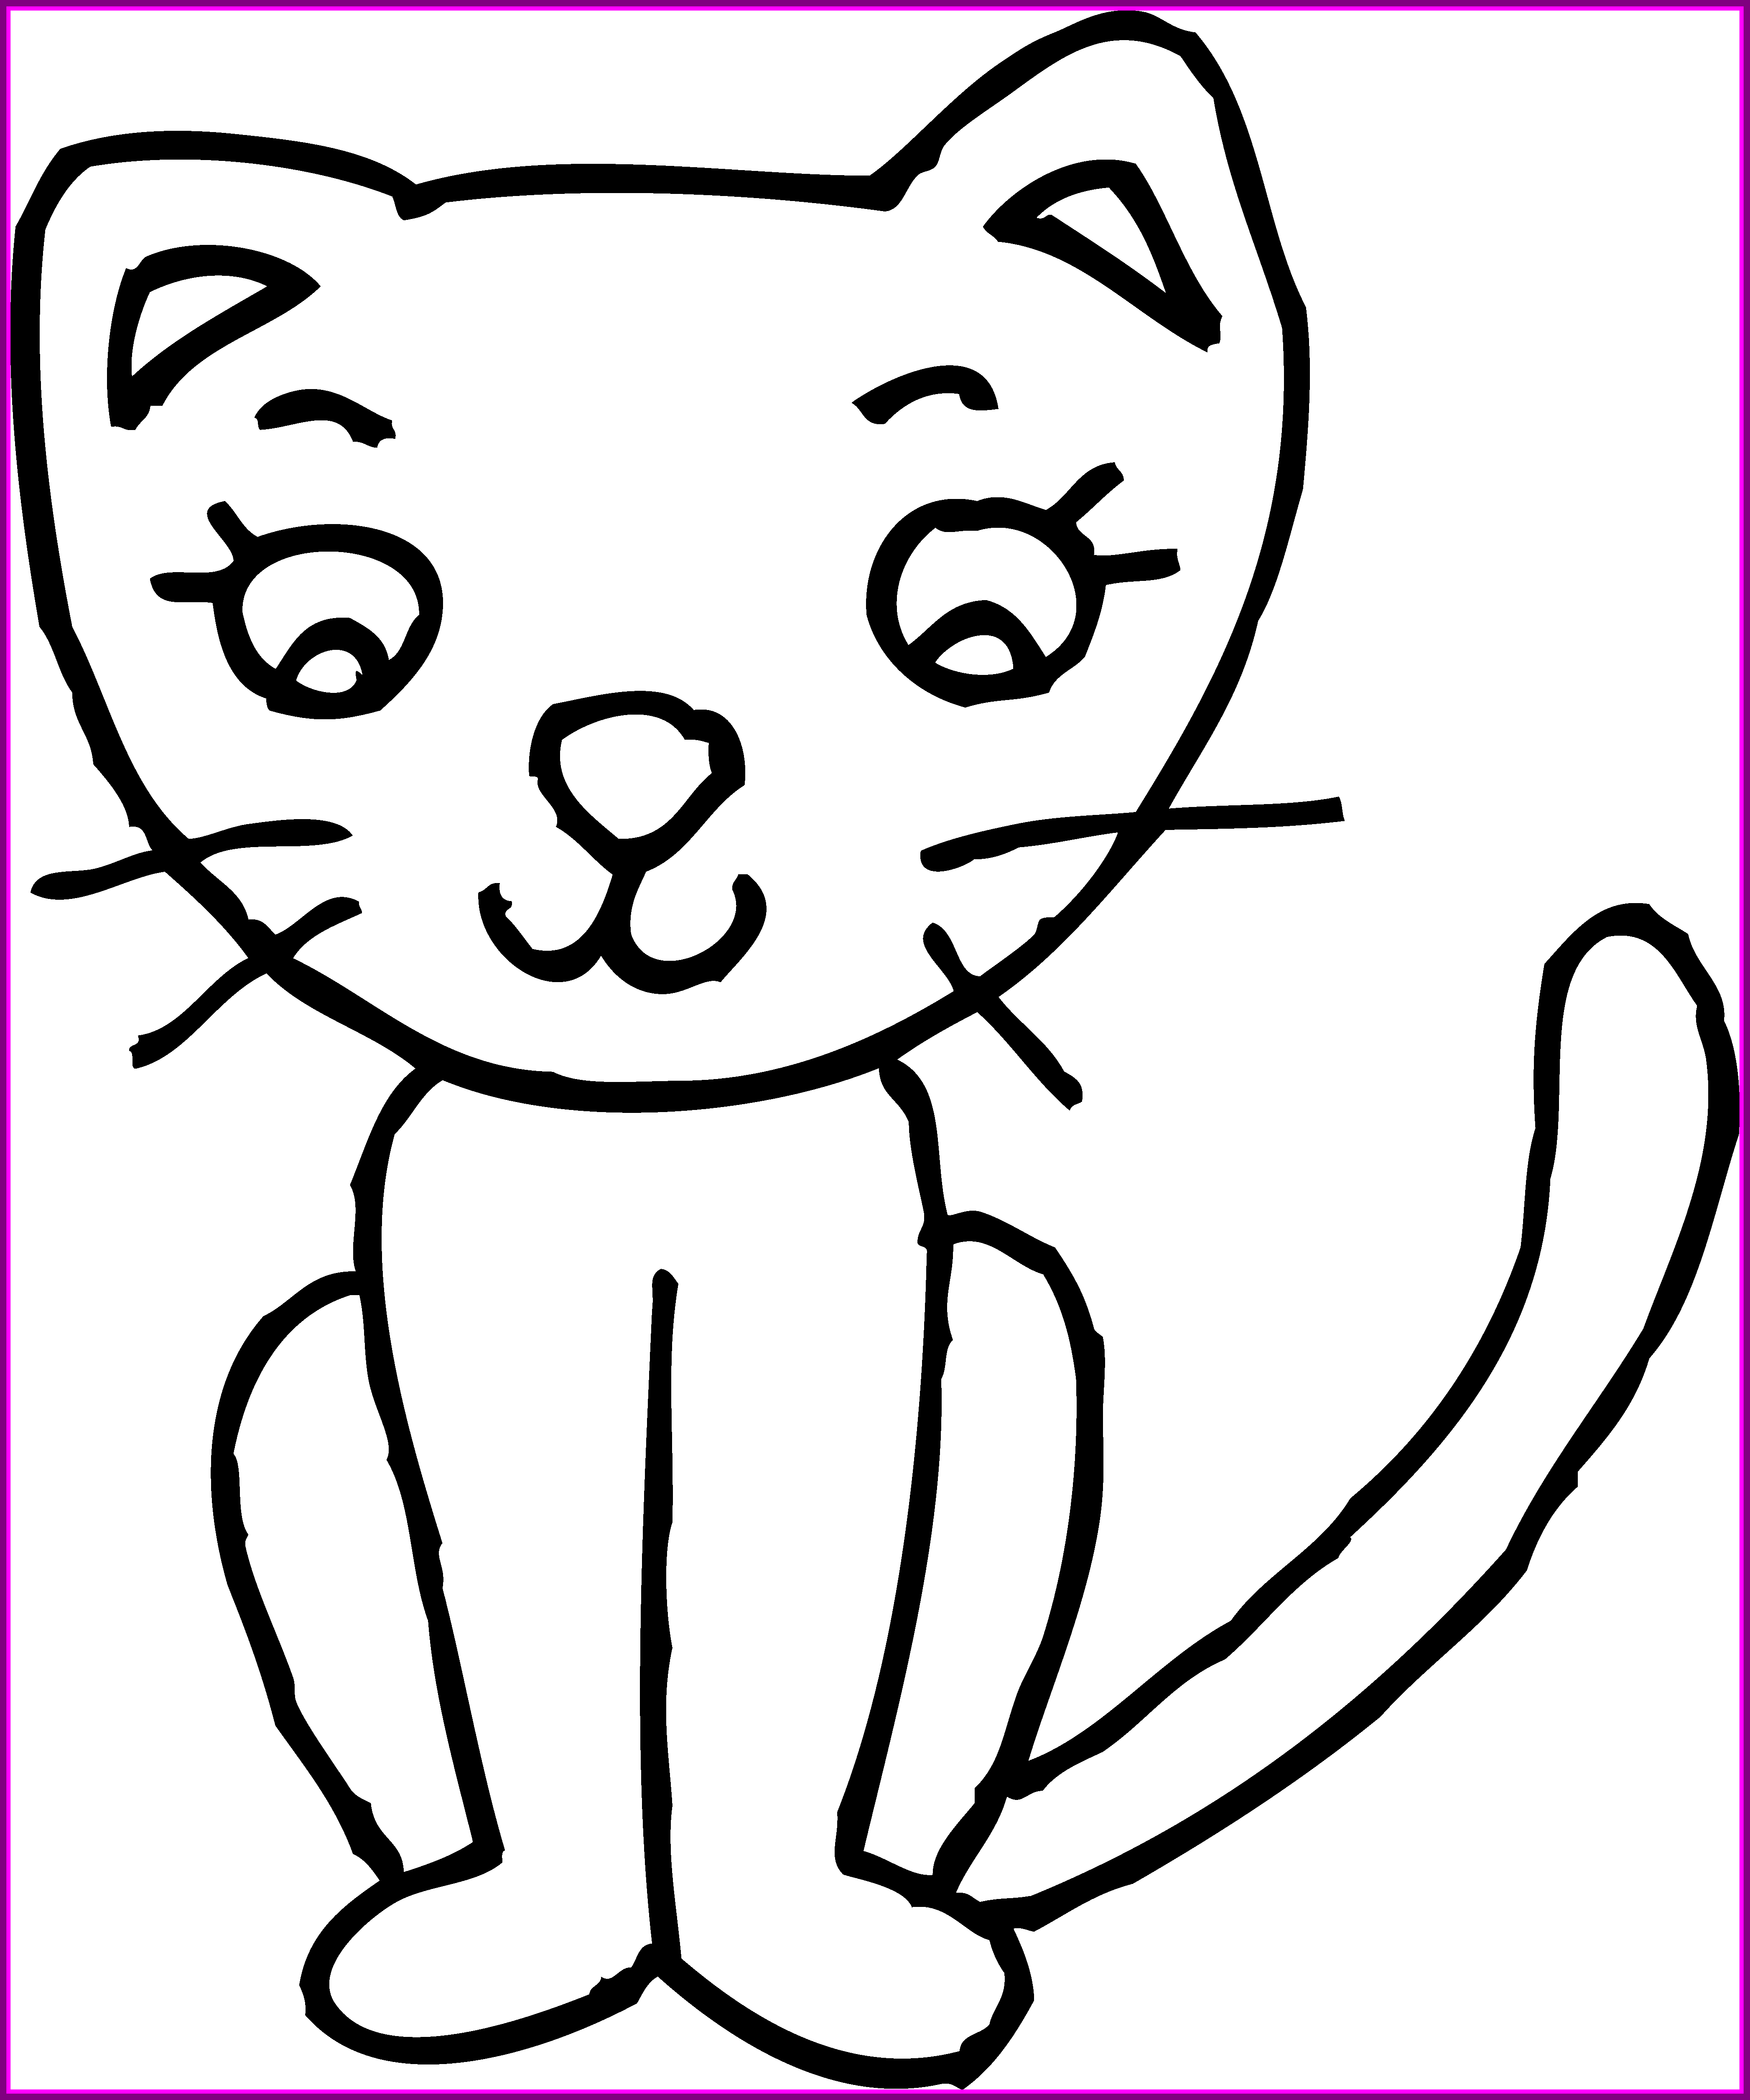 Numbers drawing cat. Kitten clip art library